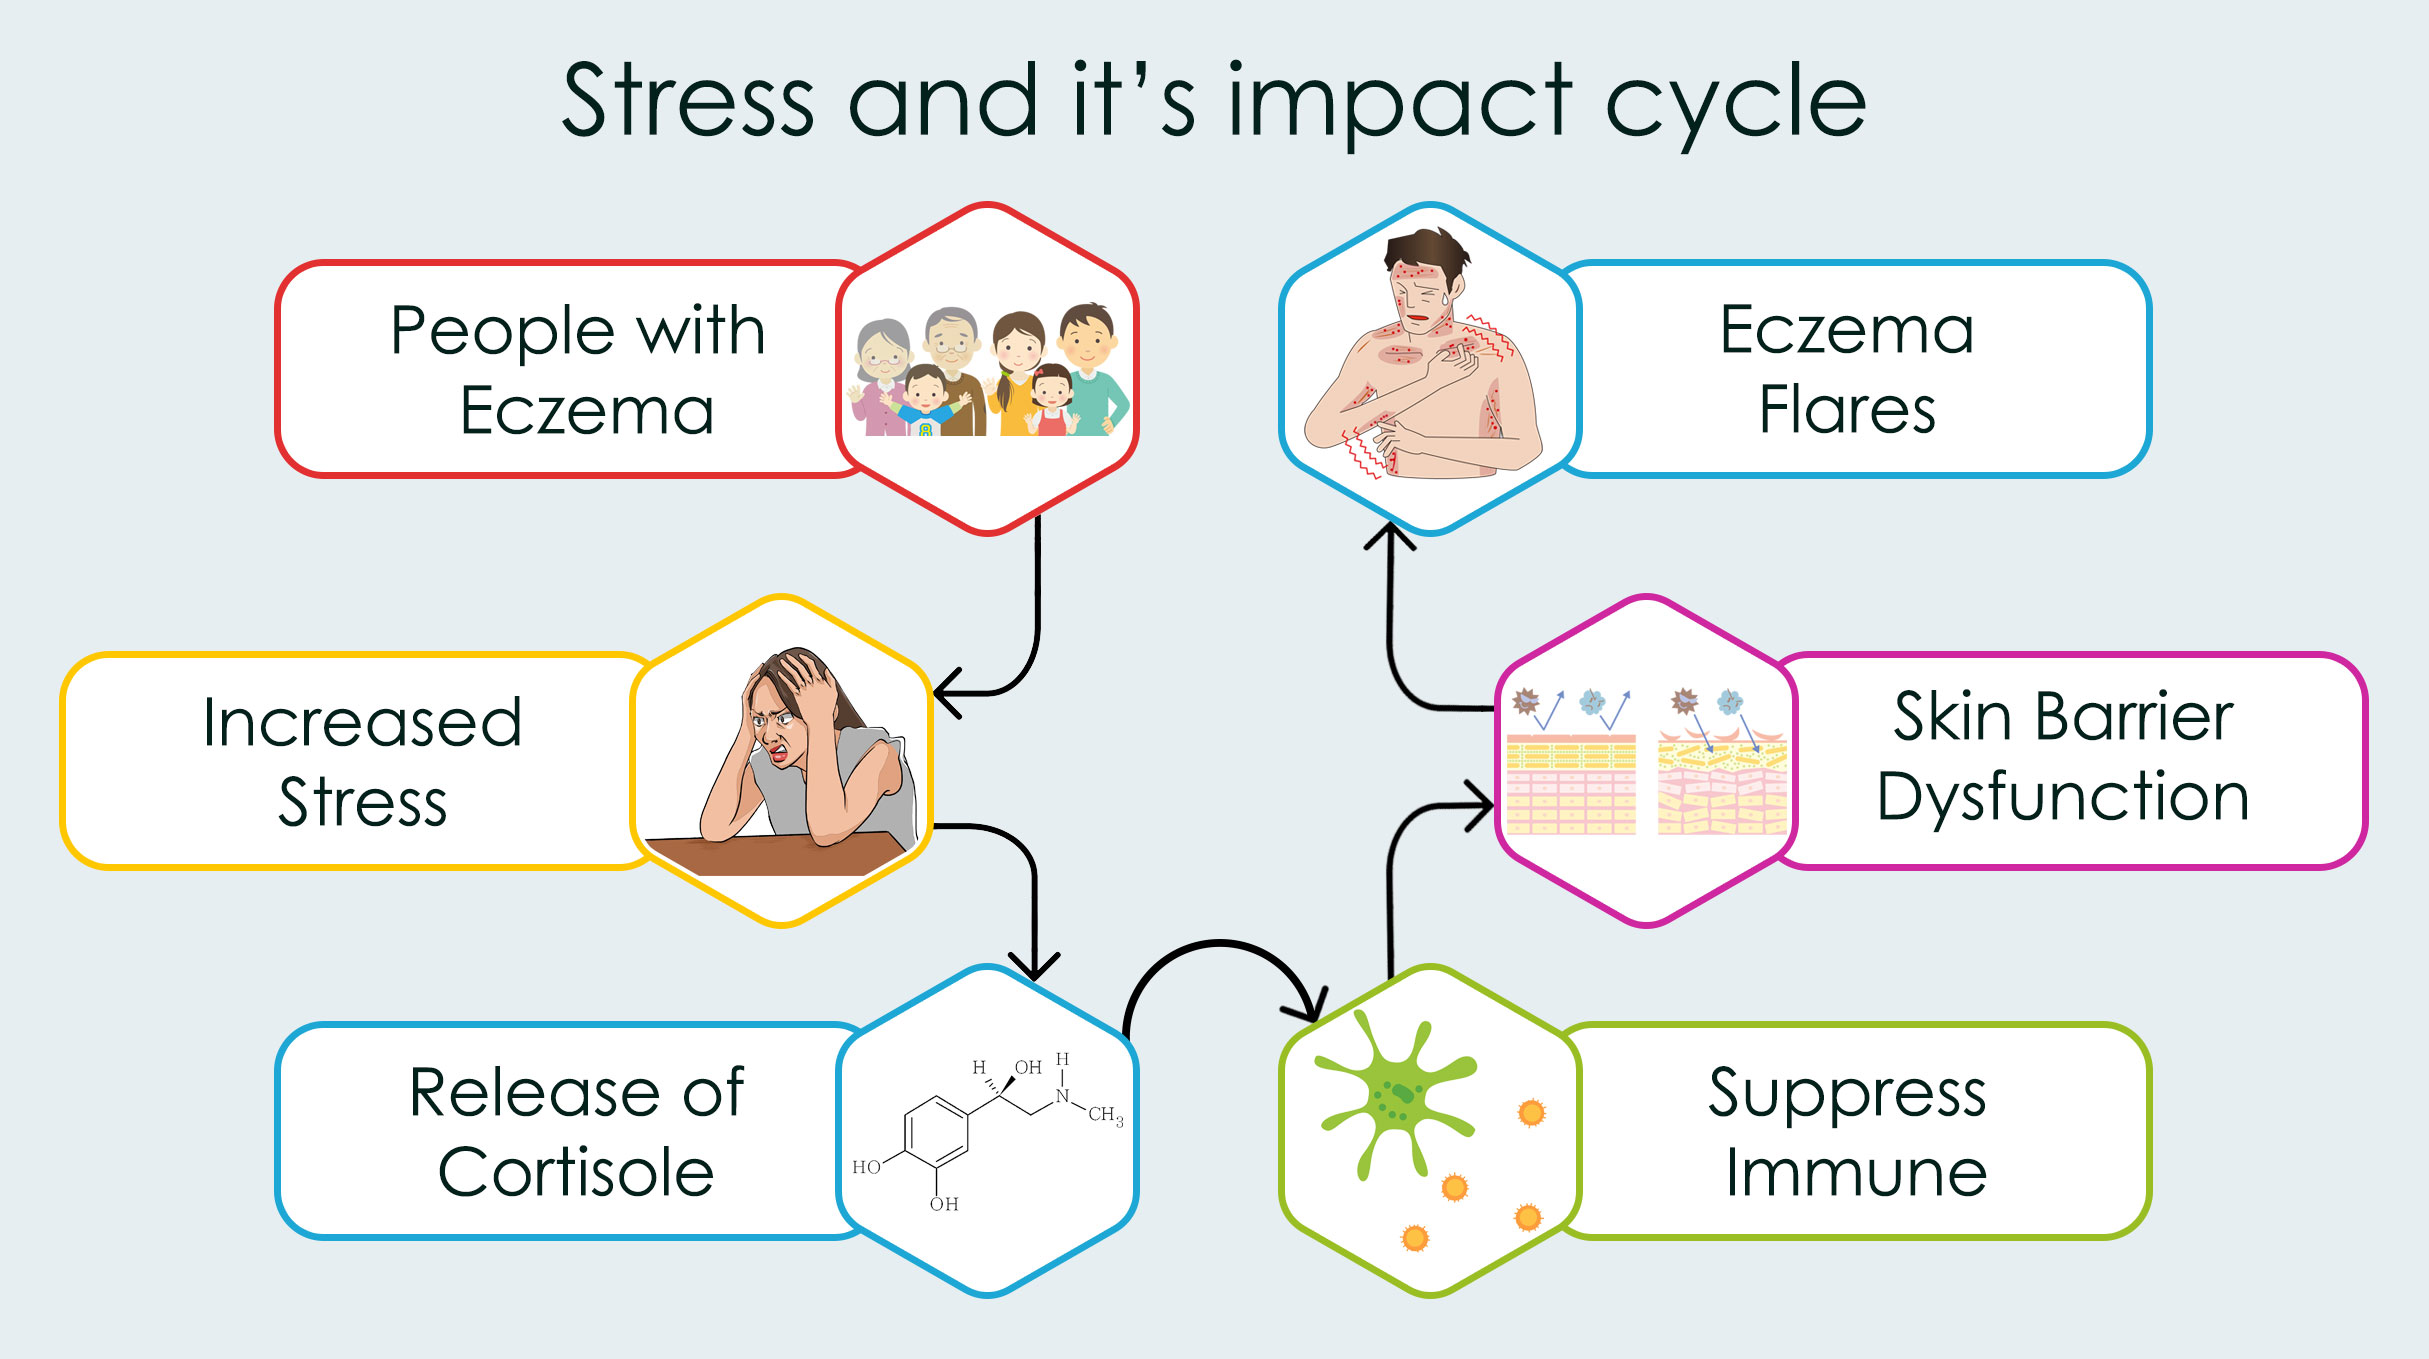 Eczema due to Stress